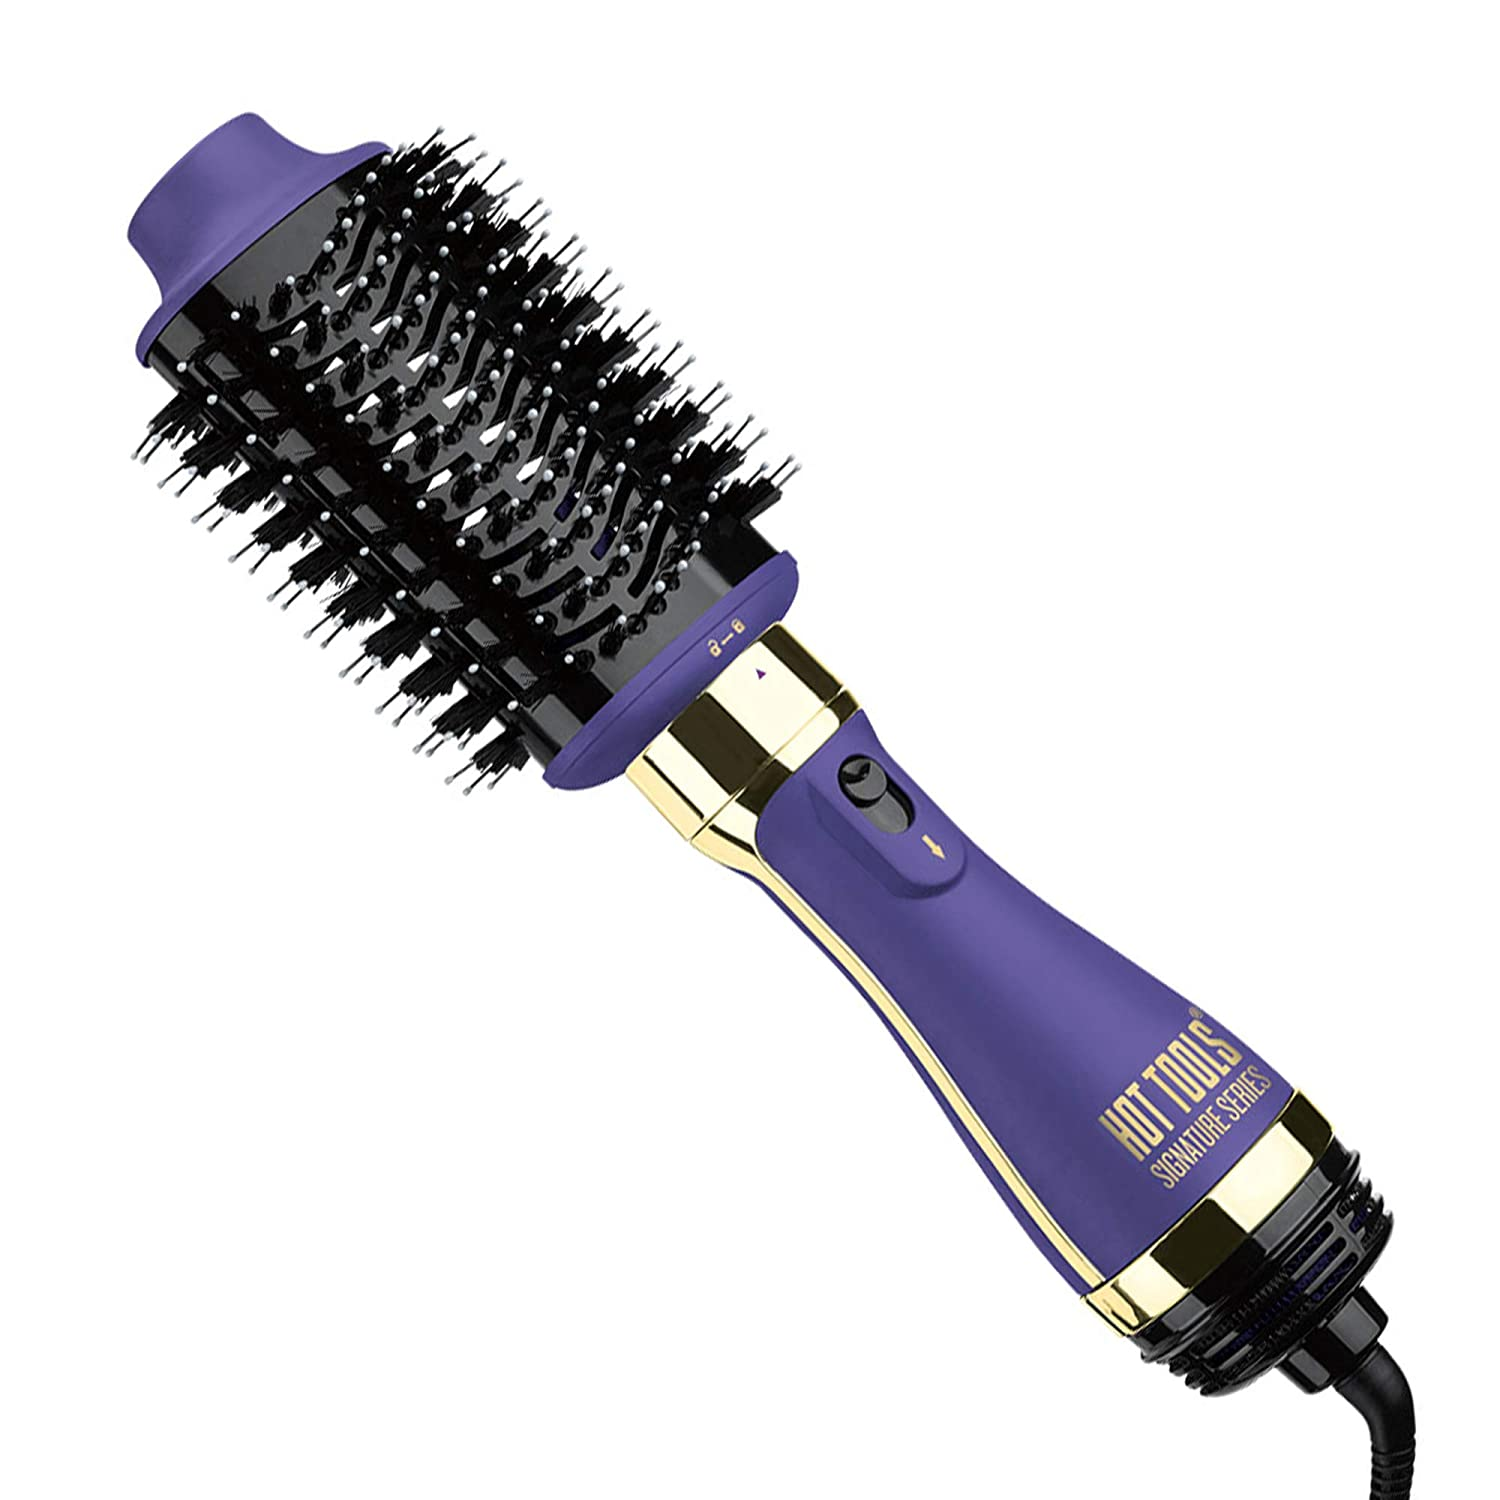 Hot Tools Pro Signature Detachable One Step Volumizer and Hair Dryer, 2.8